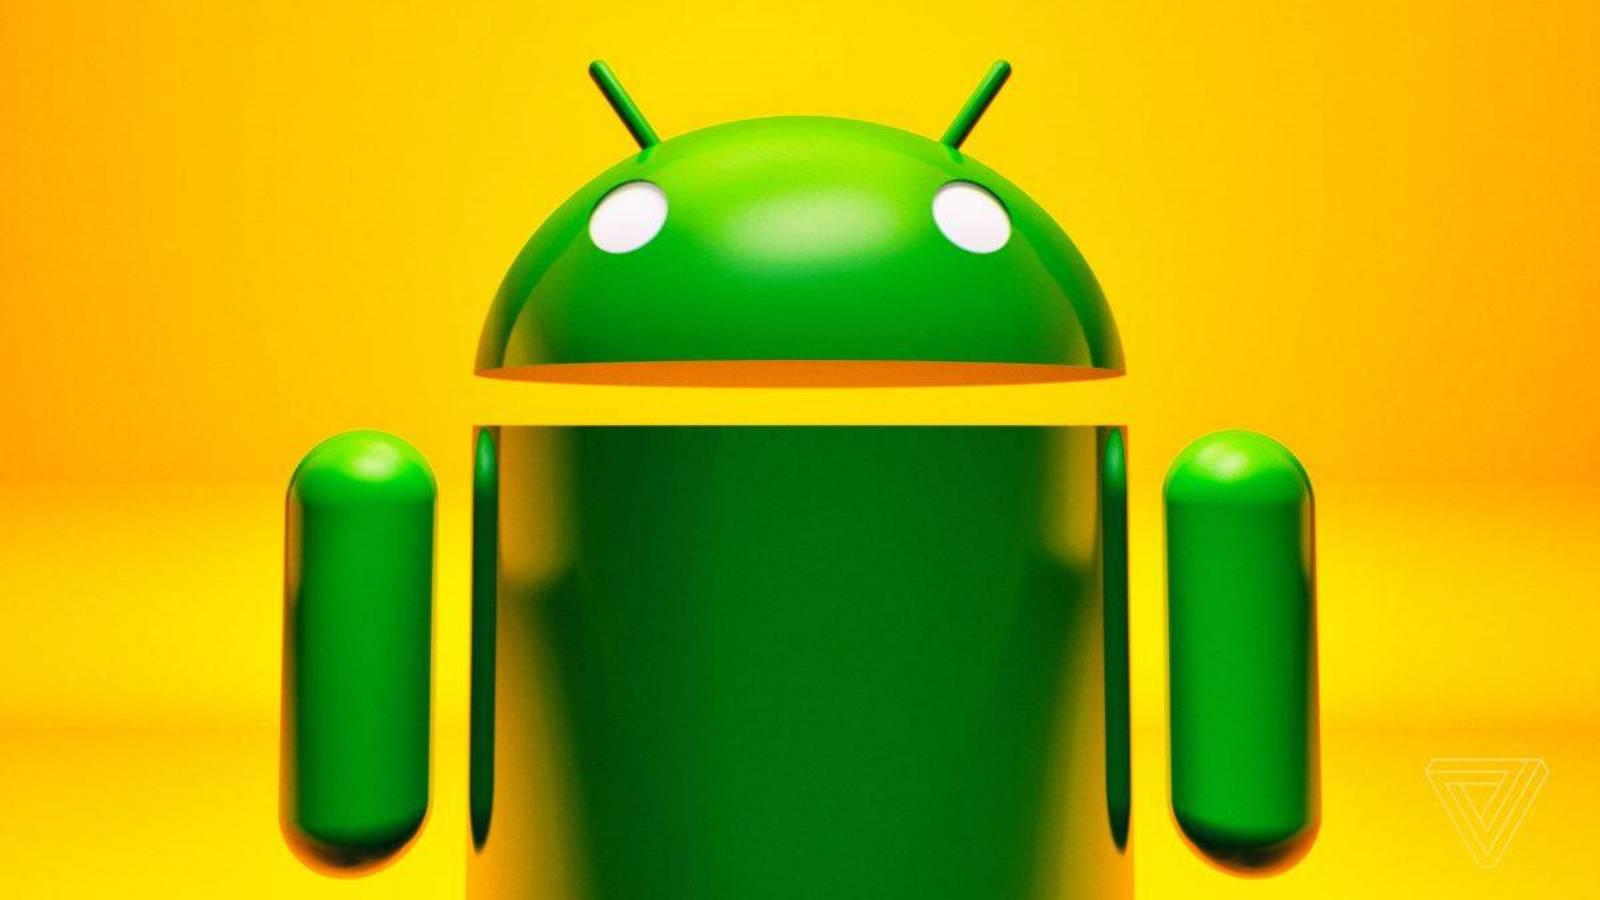 Android: Google's new secret functionality for phones